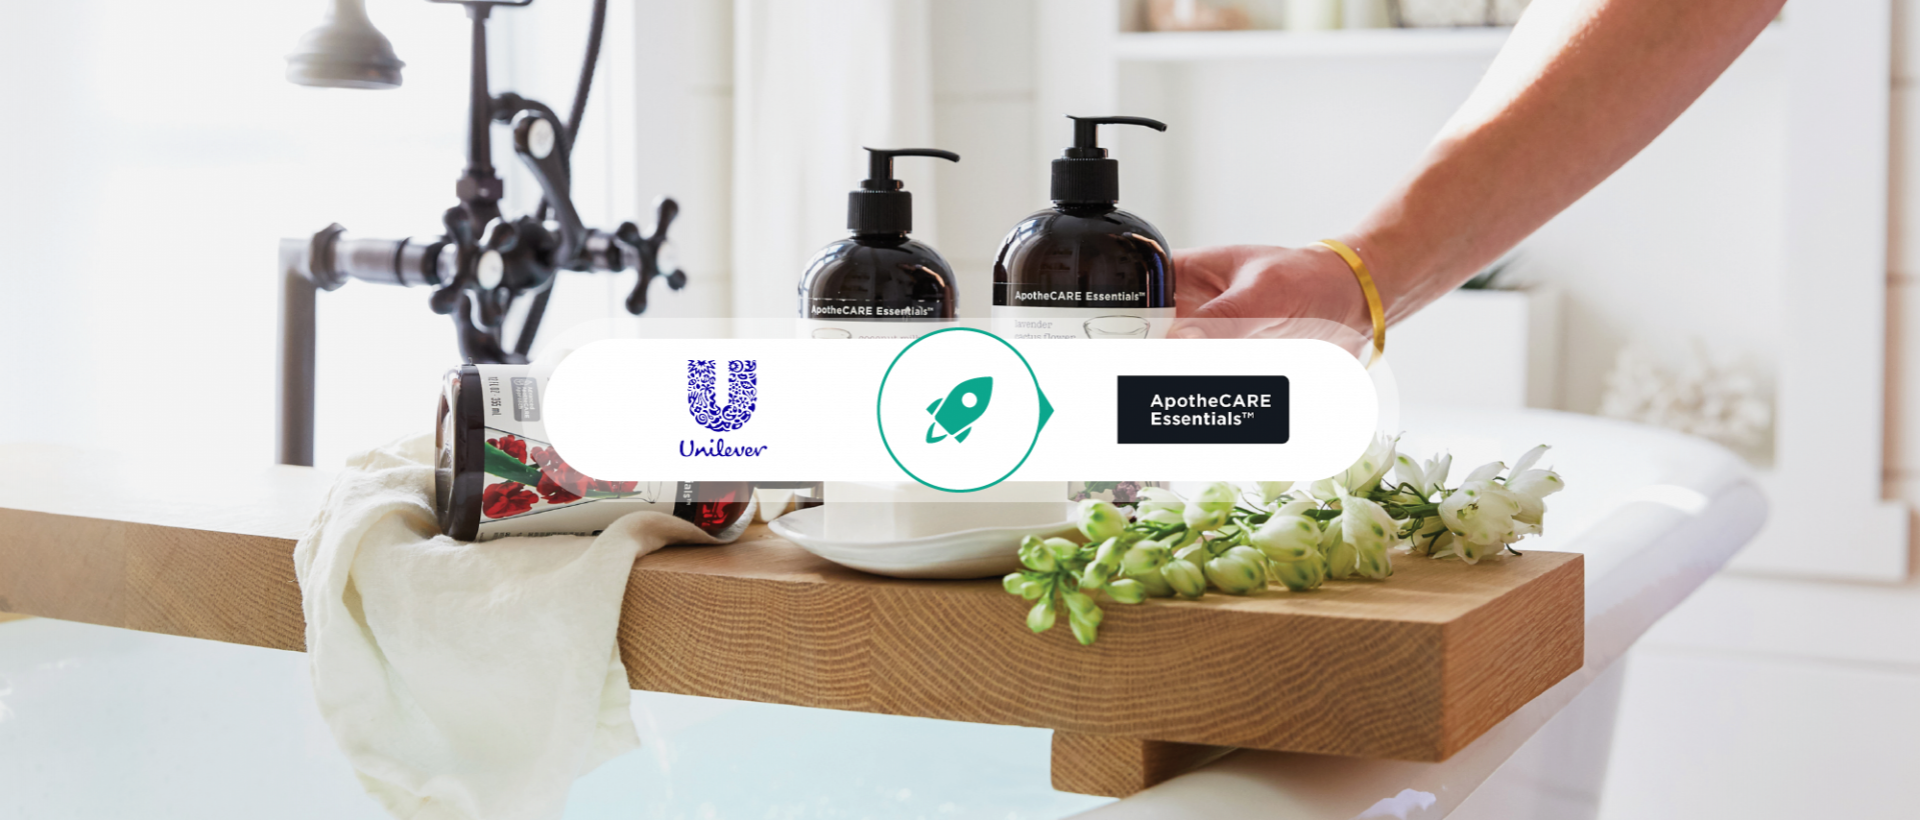 ApotheCARE Essentials by Unilever makes waves in the natural beauty market